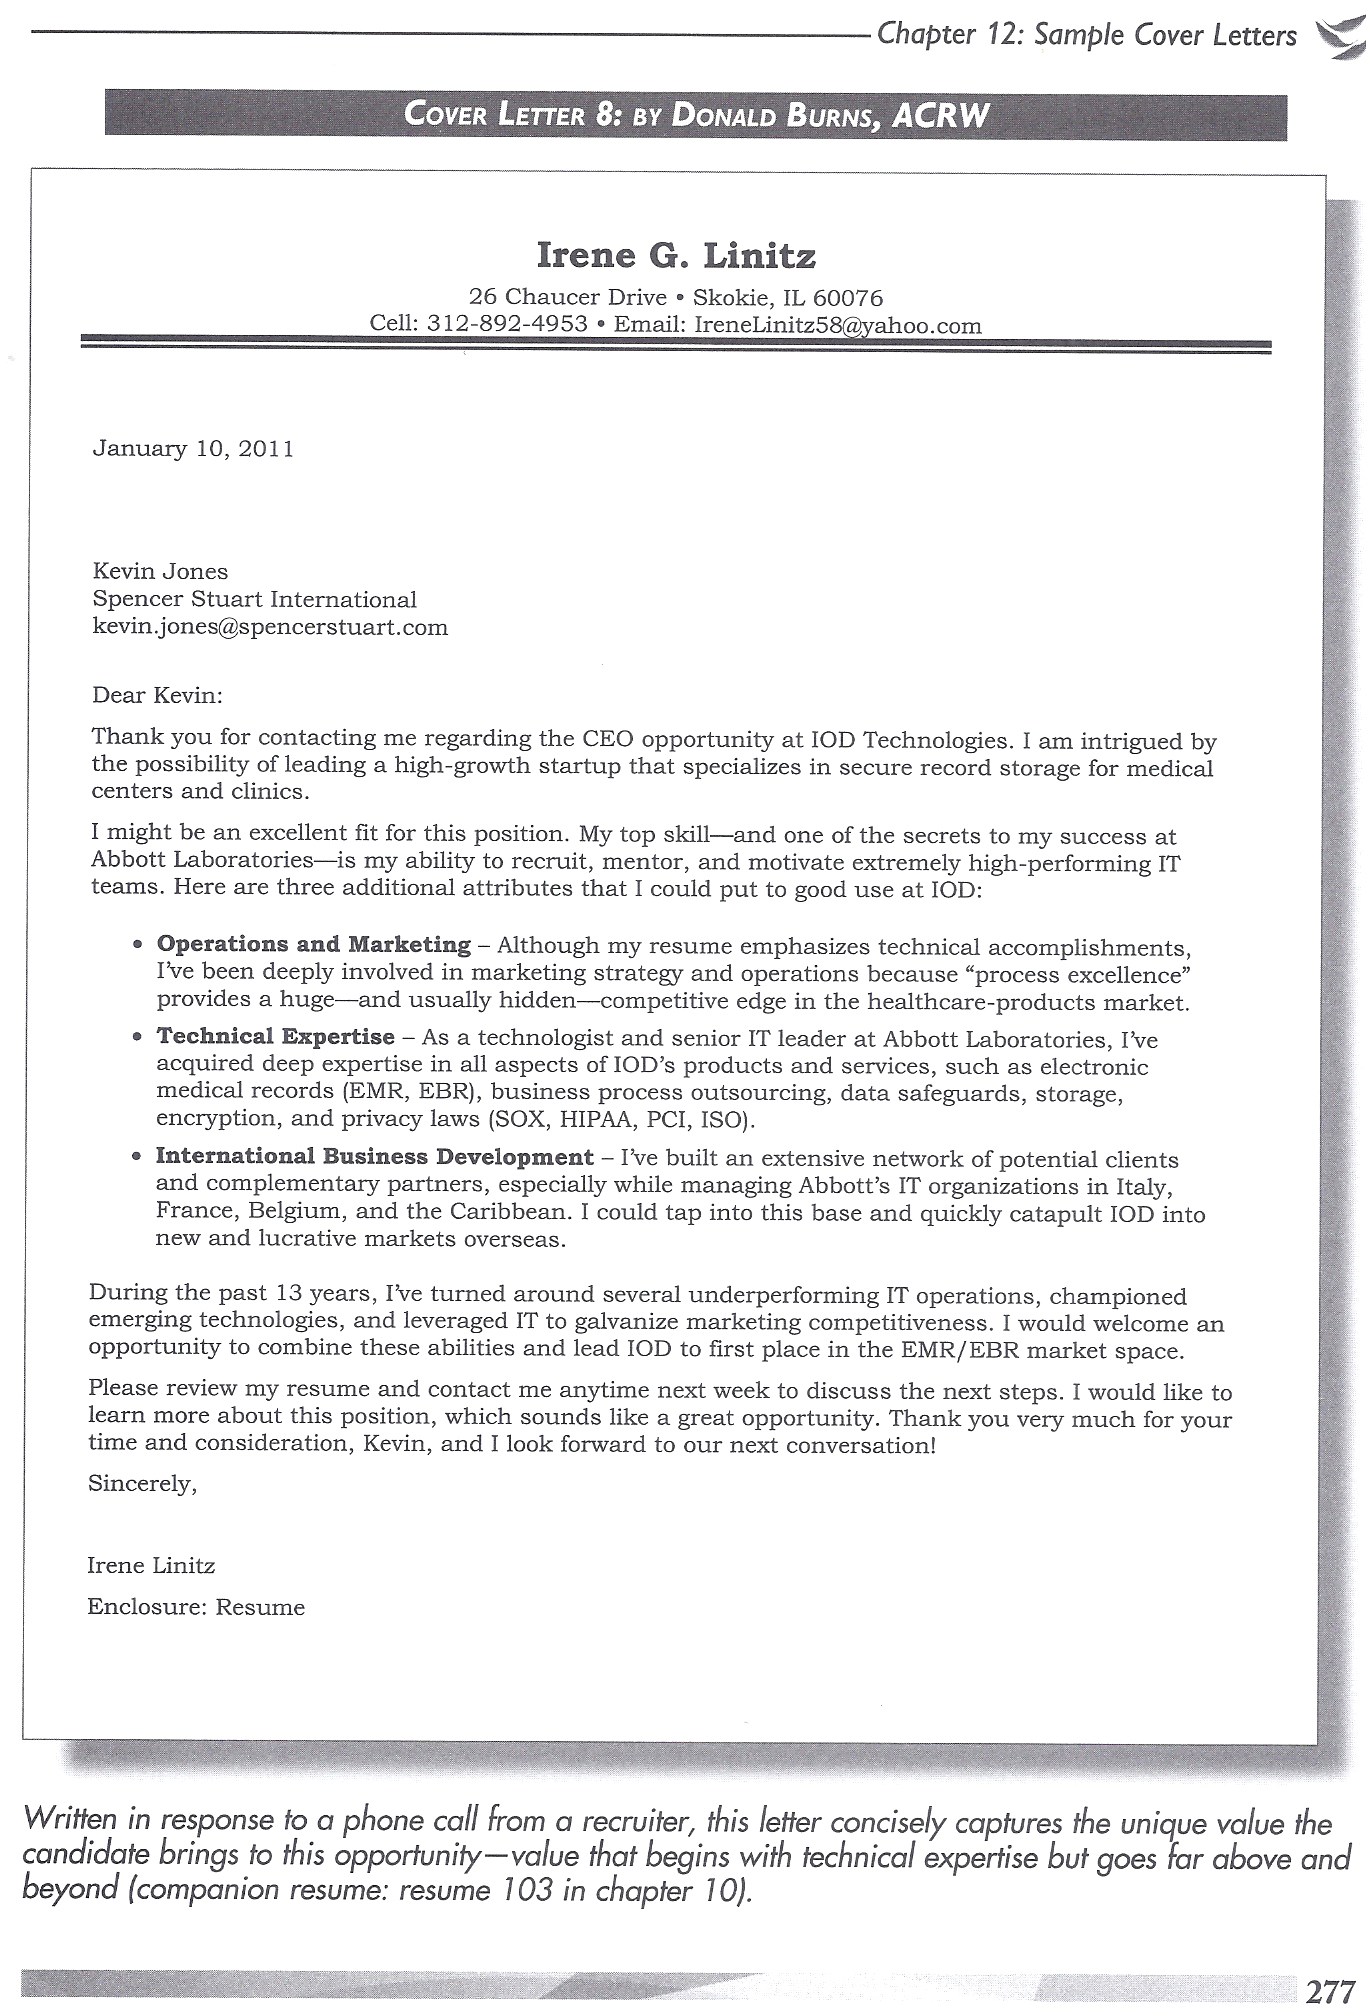 engineering resume cover letter careerdefense com